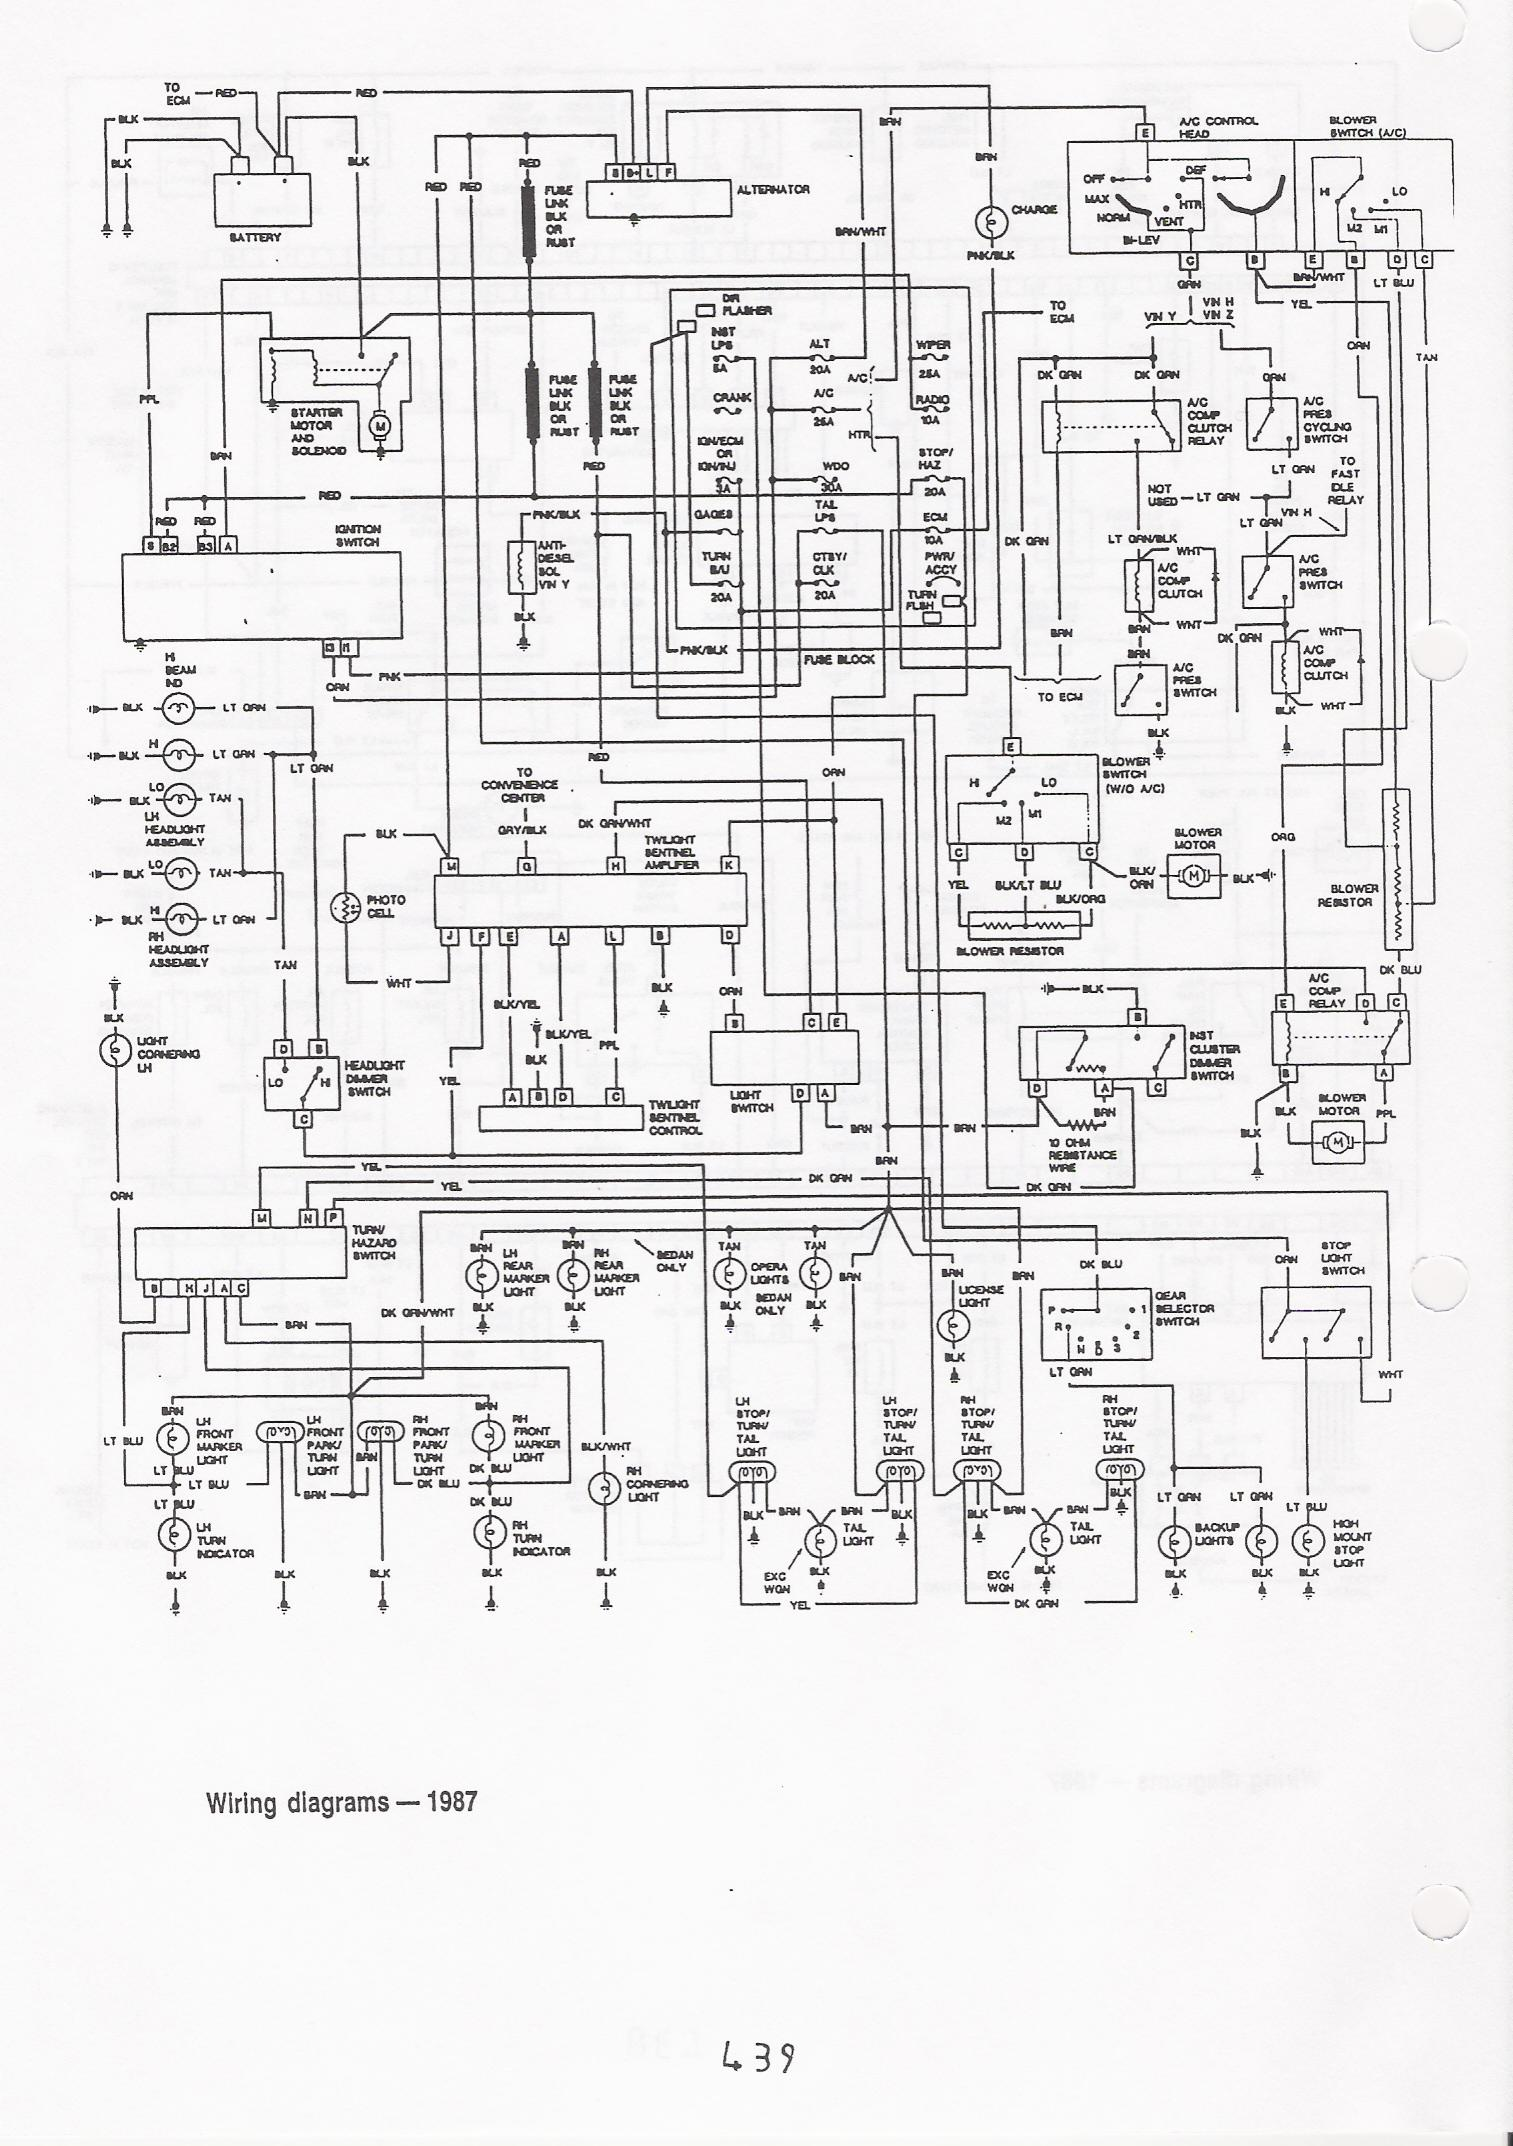 chevy nova wiring diagram chevy nova exhaust systems